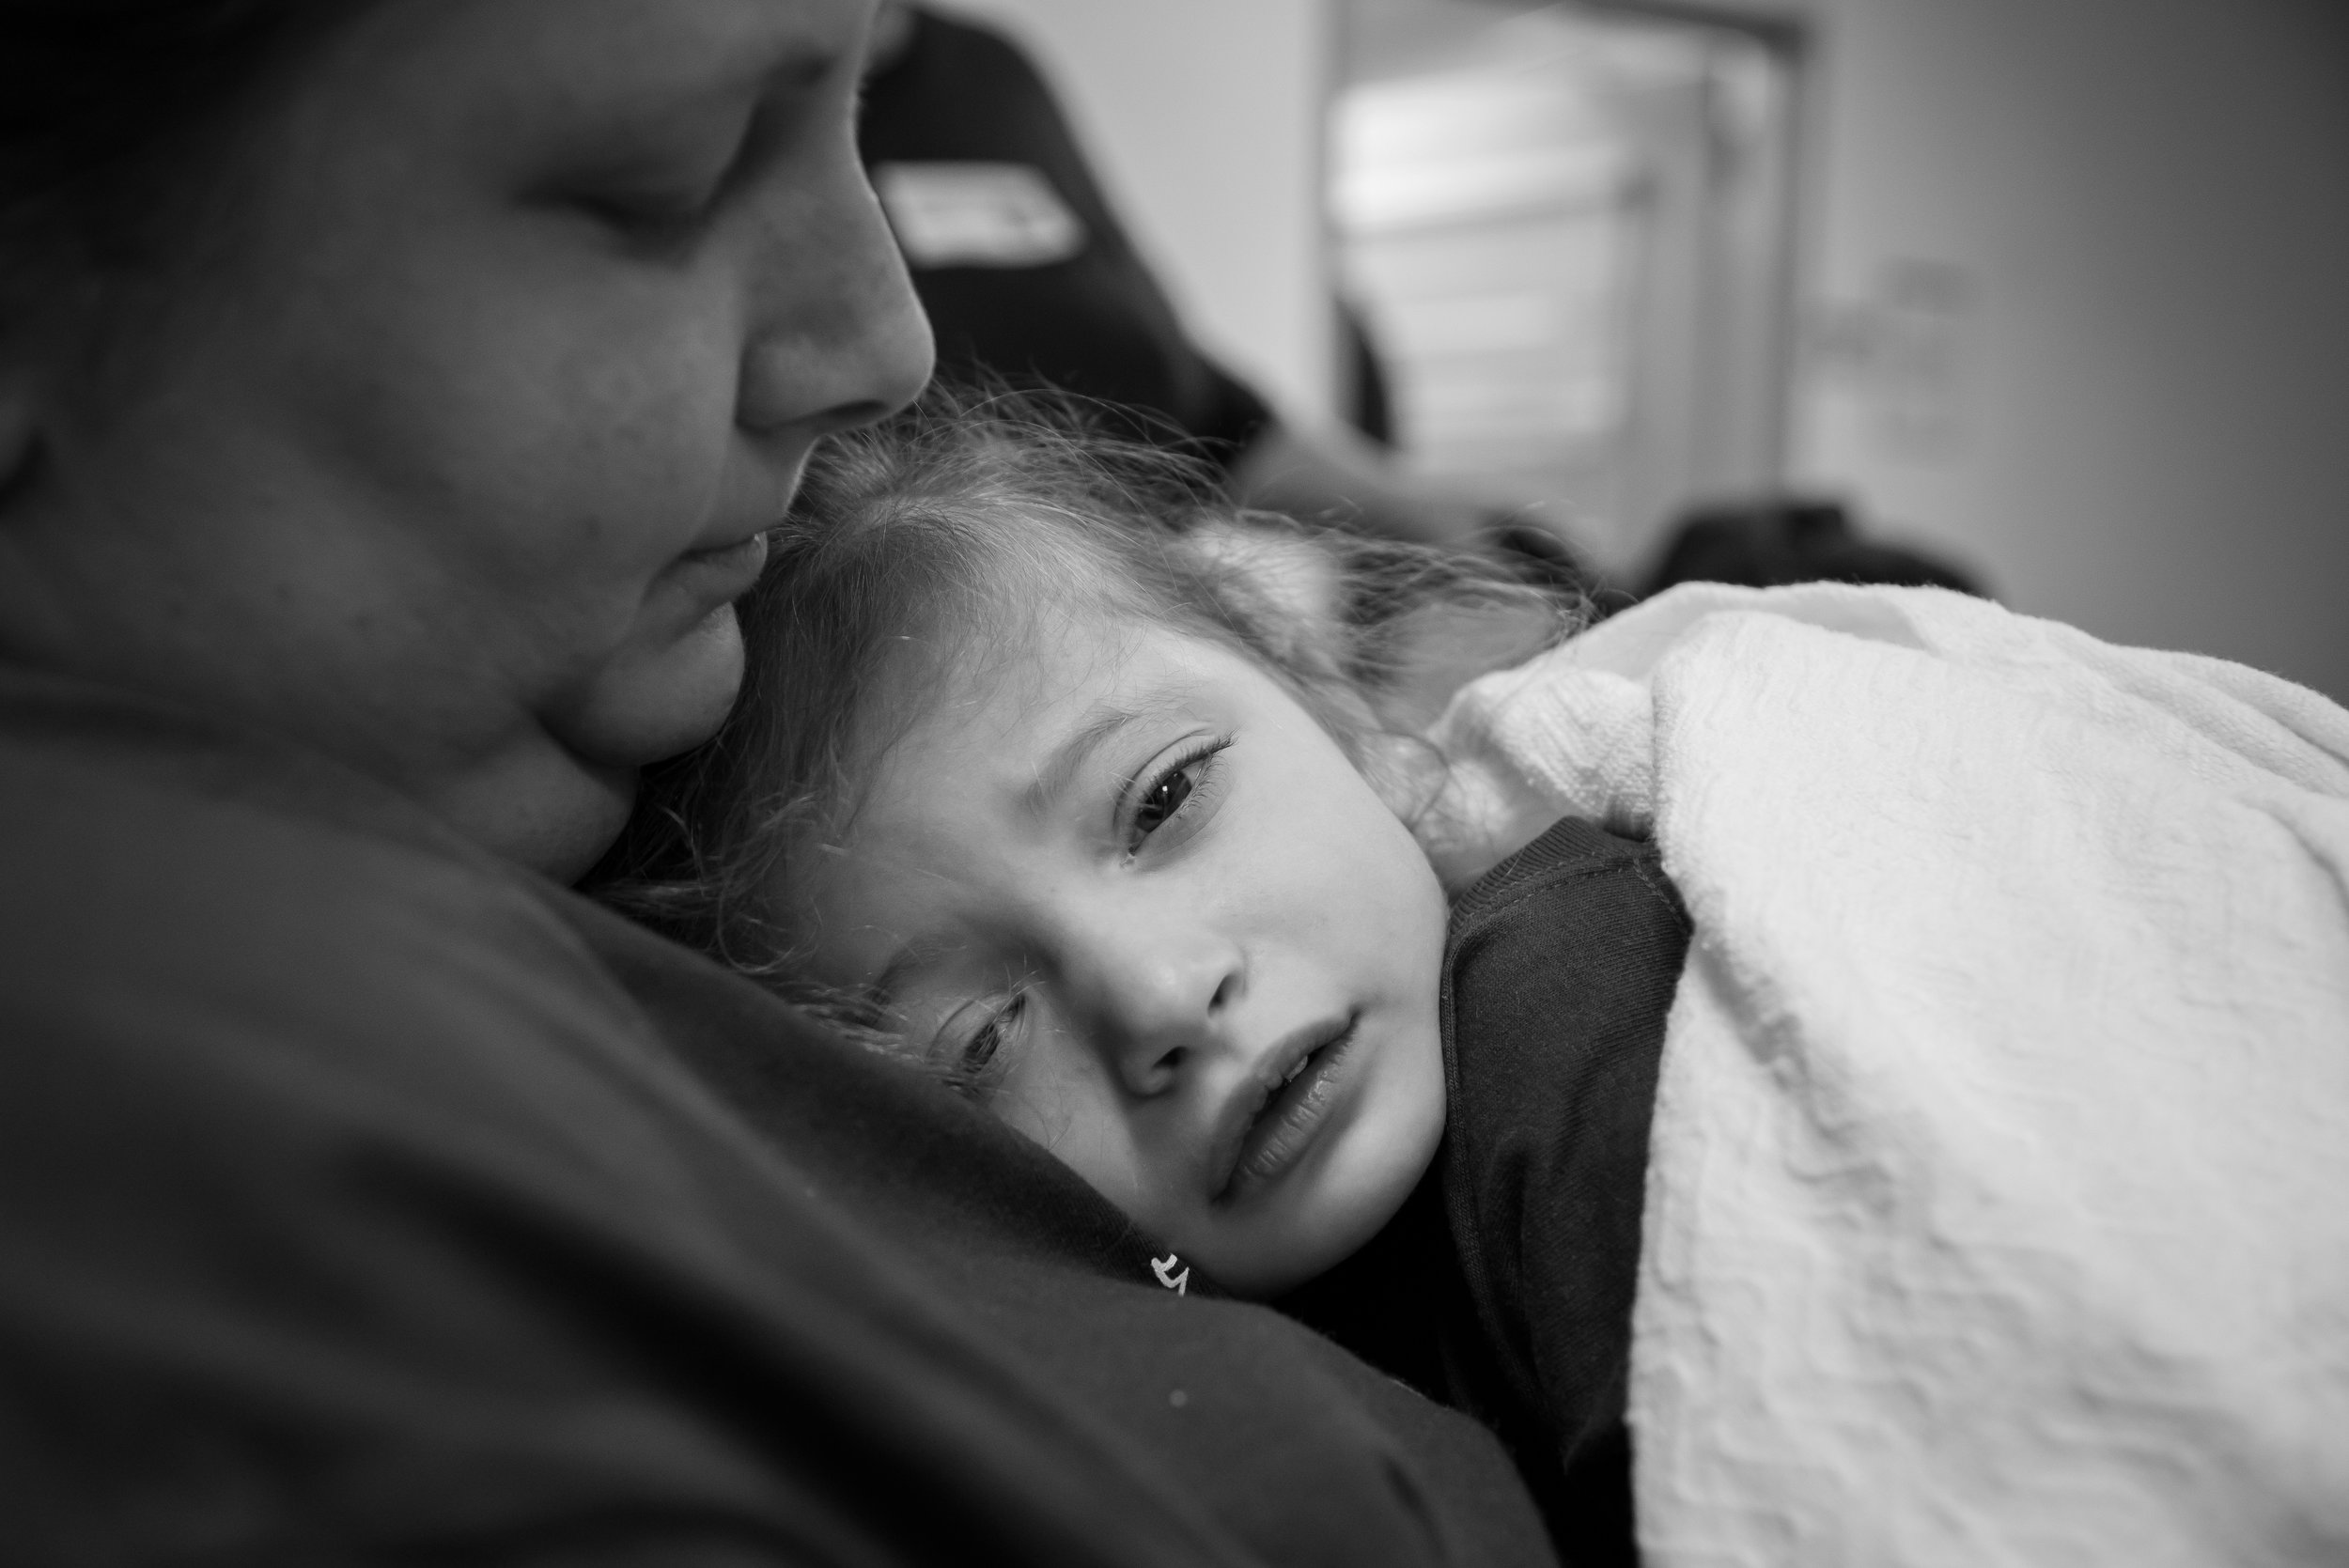 Three-year-old Arianna Failla whimpers in her mother's arms after waking up from an anesthesic that was given to her prior to an MRI at Upstate Golisano Children's Hospital in Syracuse, N.Y.